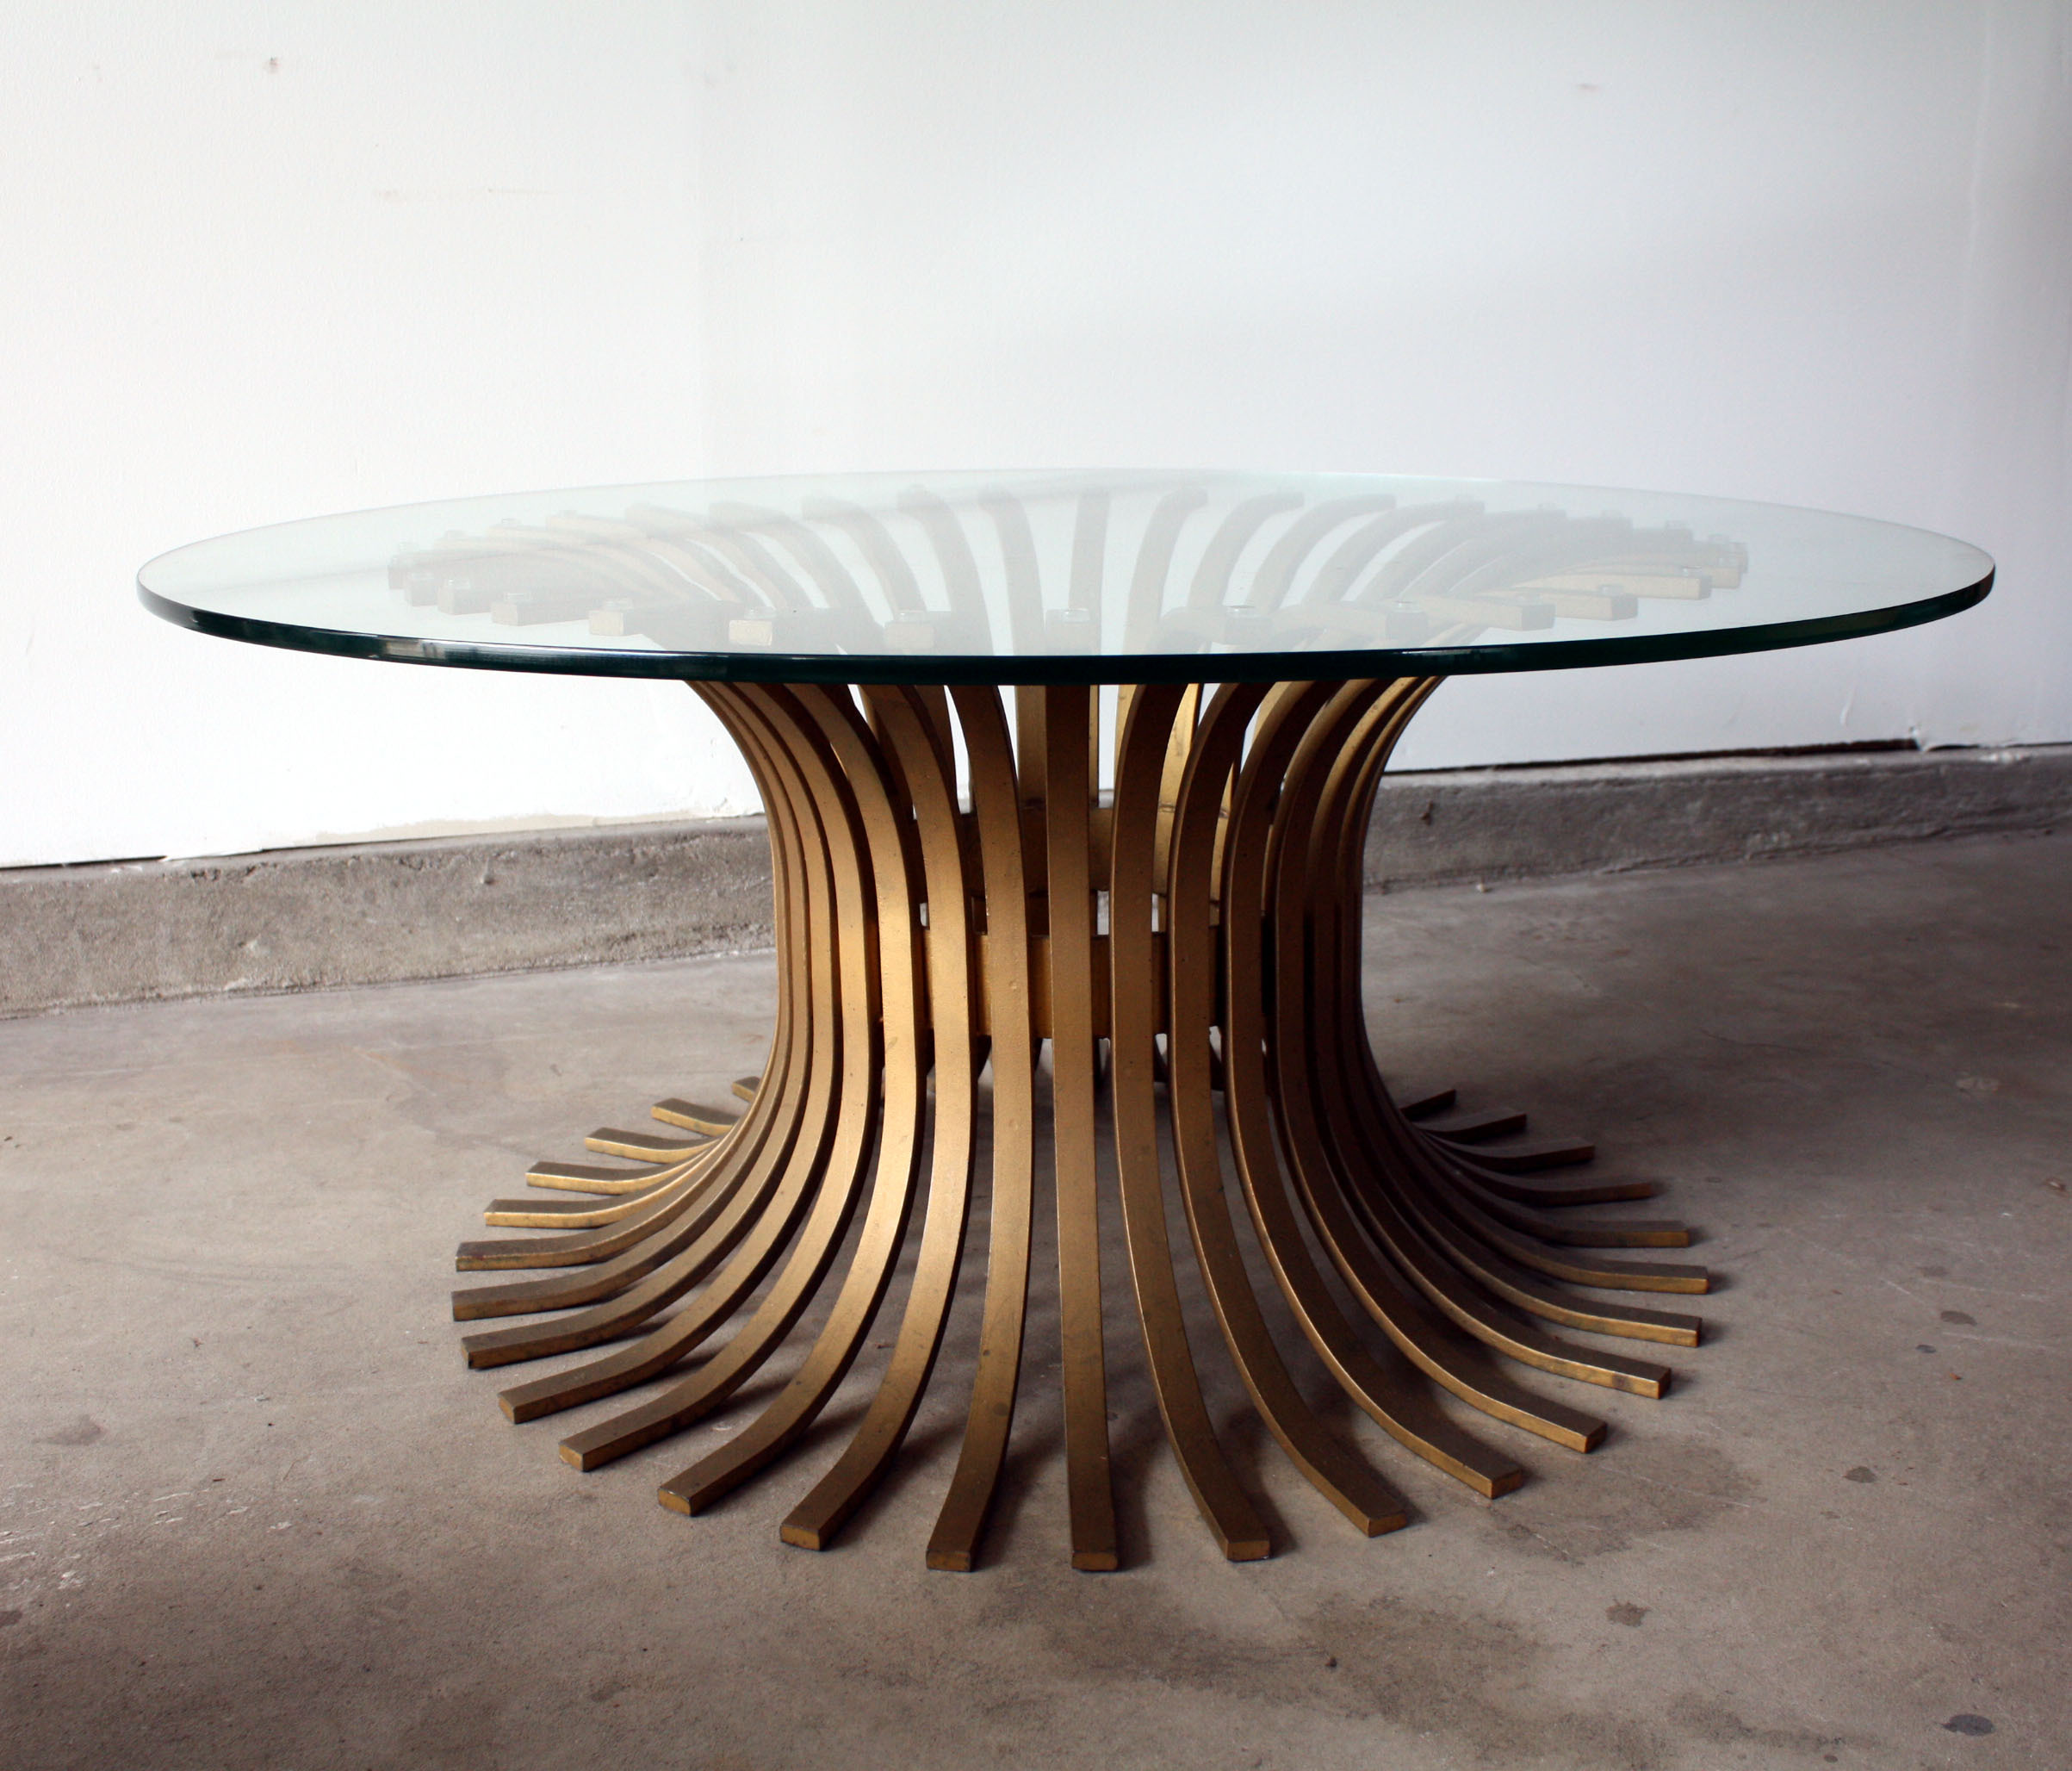 Round Glass Pedestal Coffee Table: Pedestal Coffee Table Design Images Photos Pictures